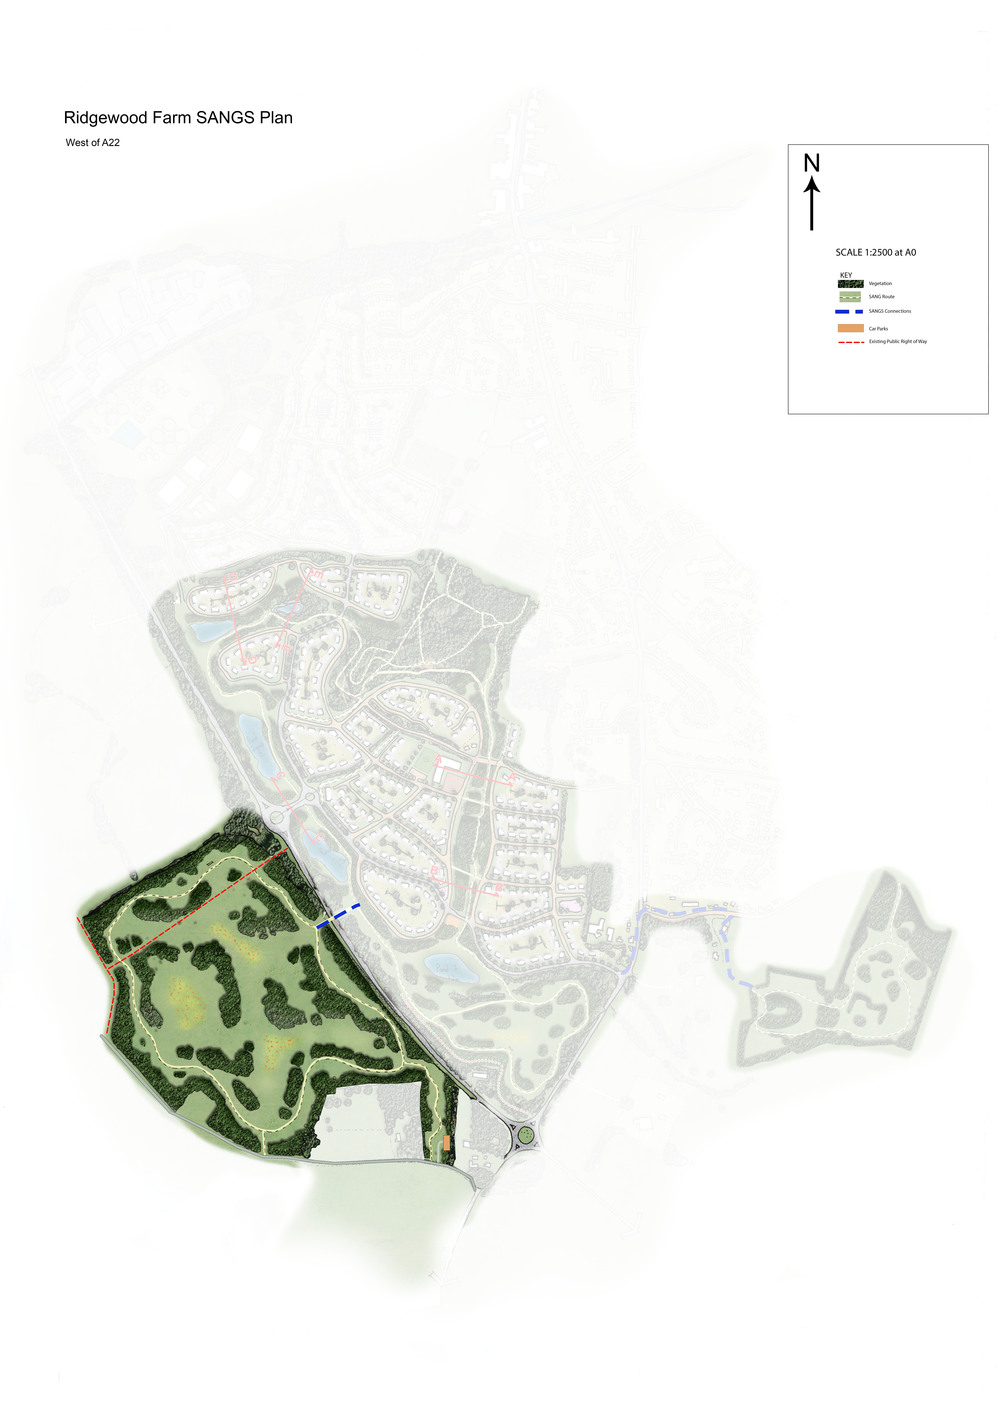 Ridgewood Farm SANGS Plan West of A22 Option 2.jpg